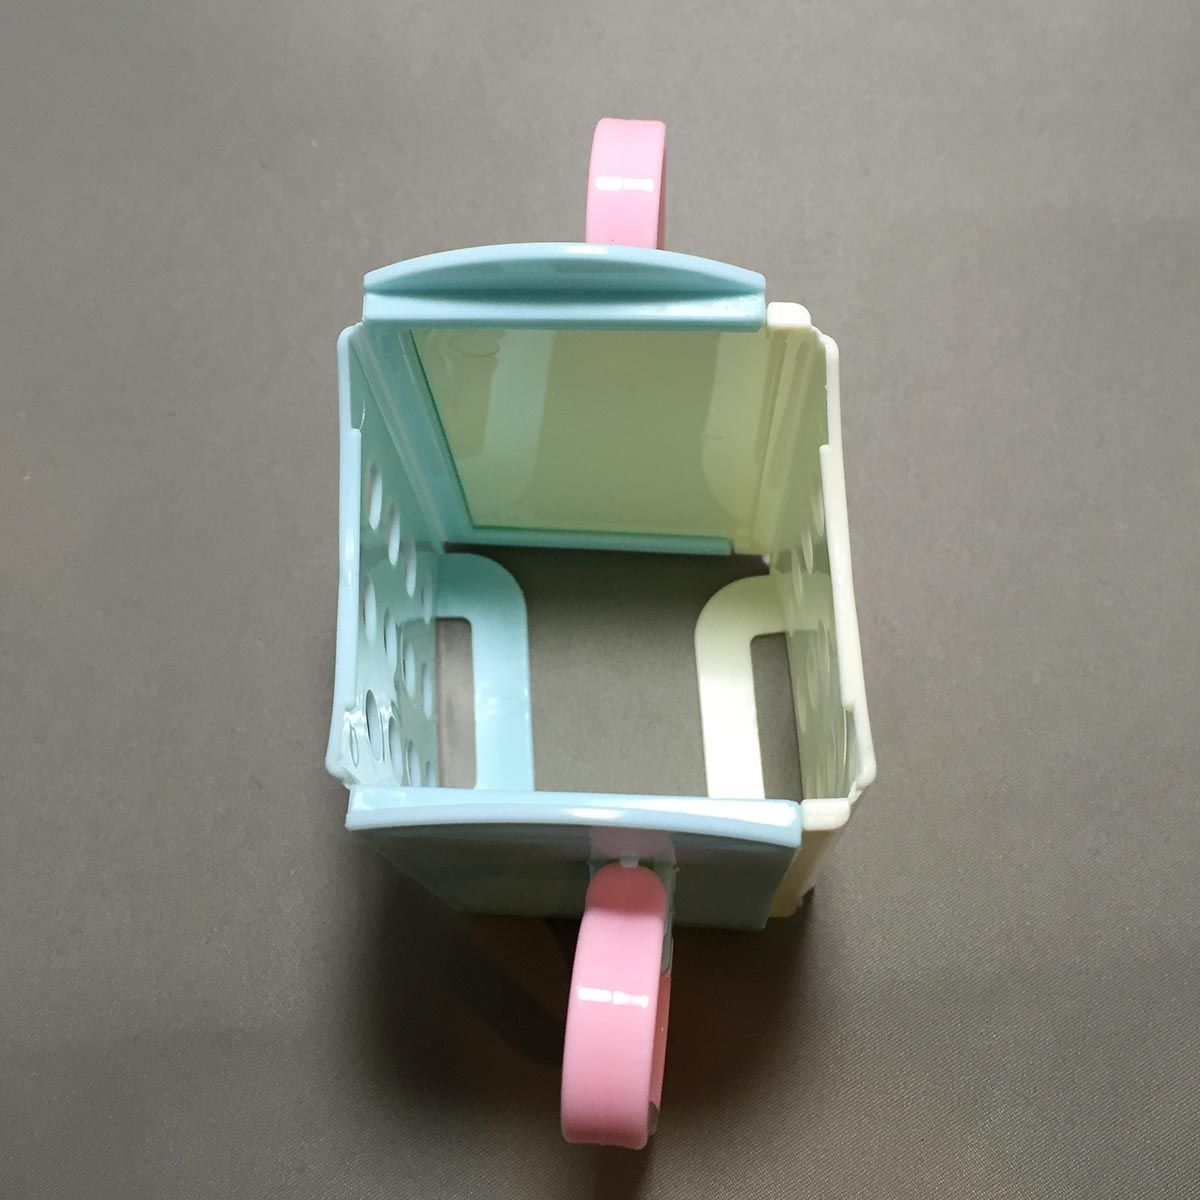 Folding Drink Box Holder - opened Top View